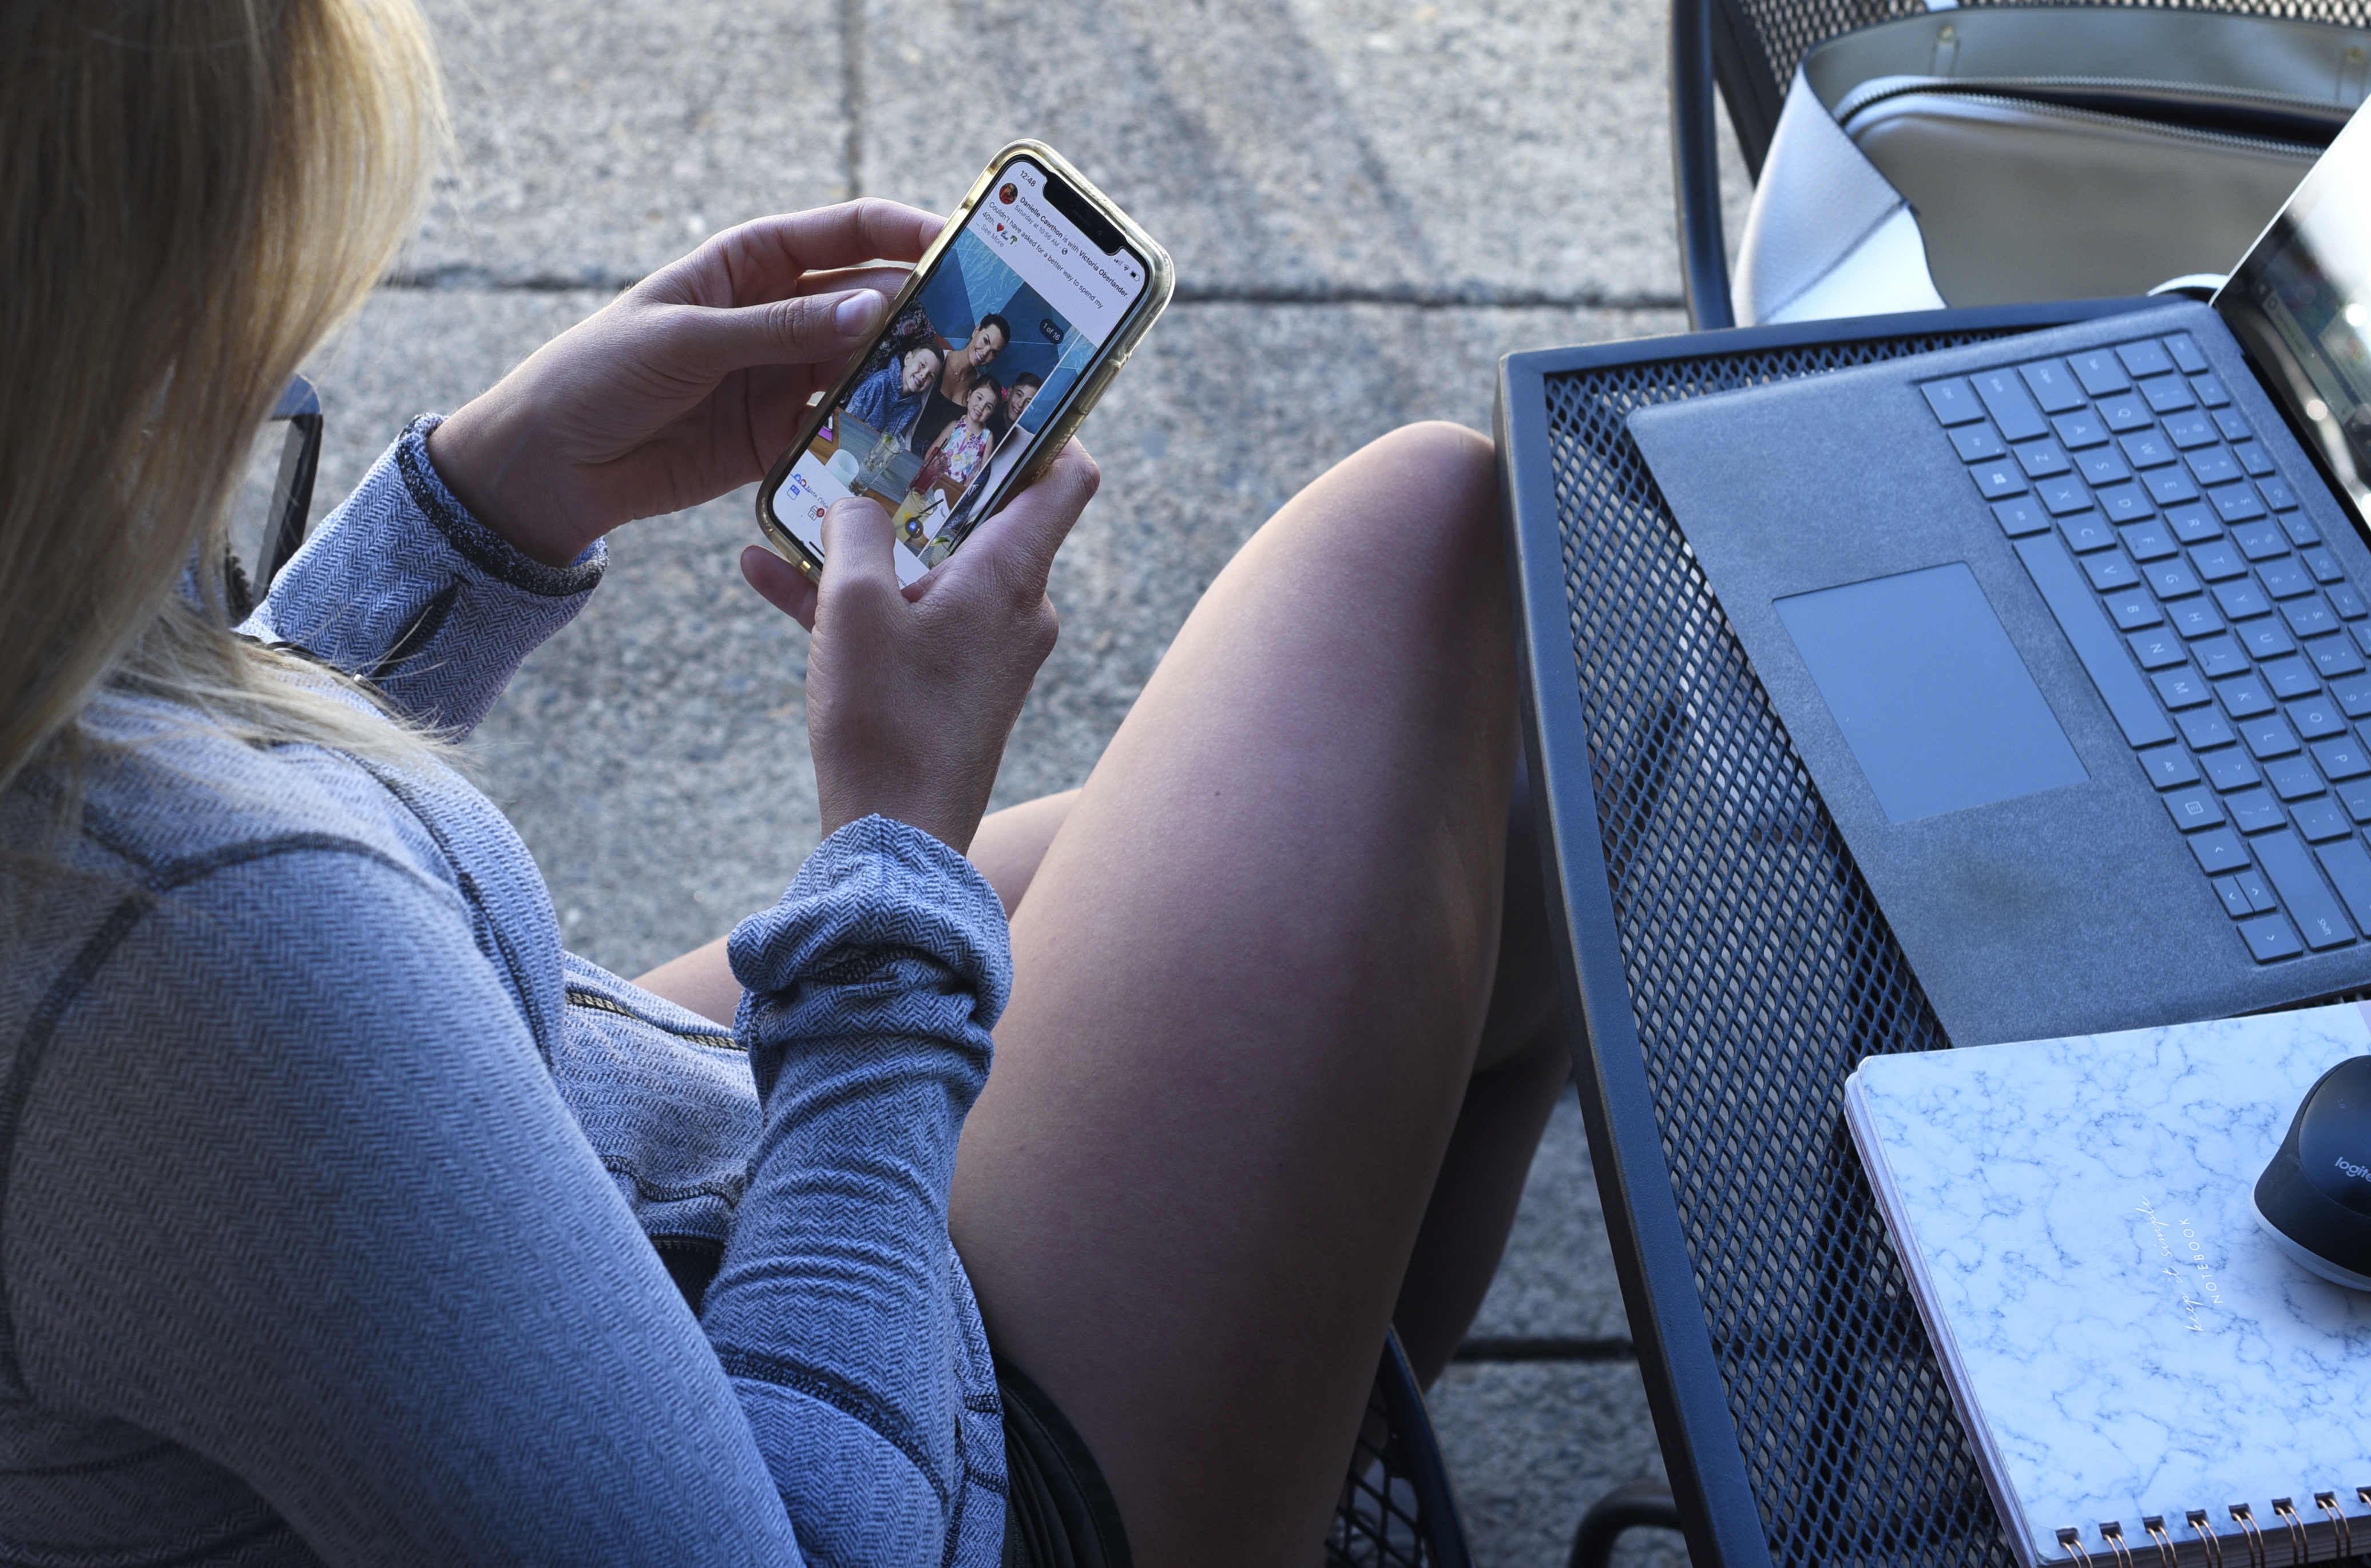 A woman sitting at an outdoor table with her laptop looks instead at her smartphone.